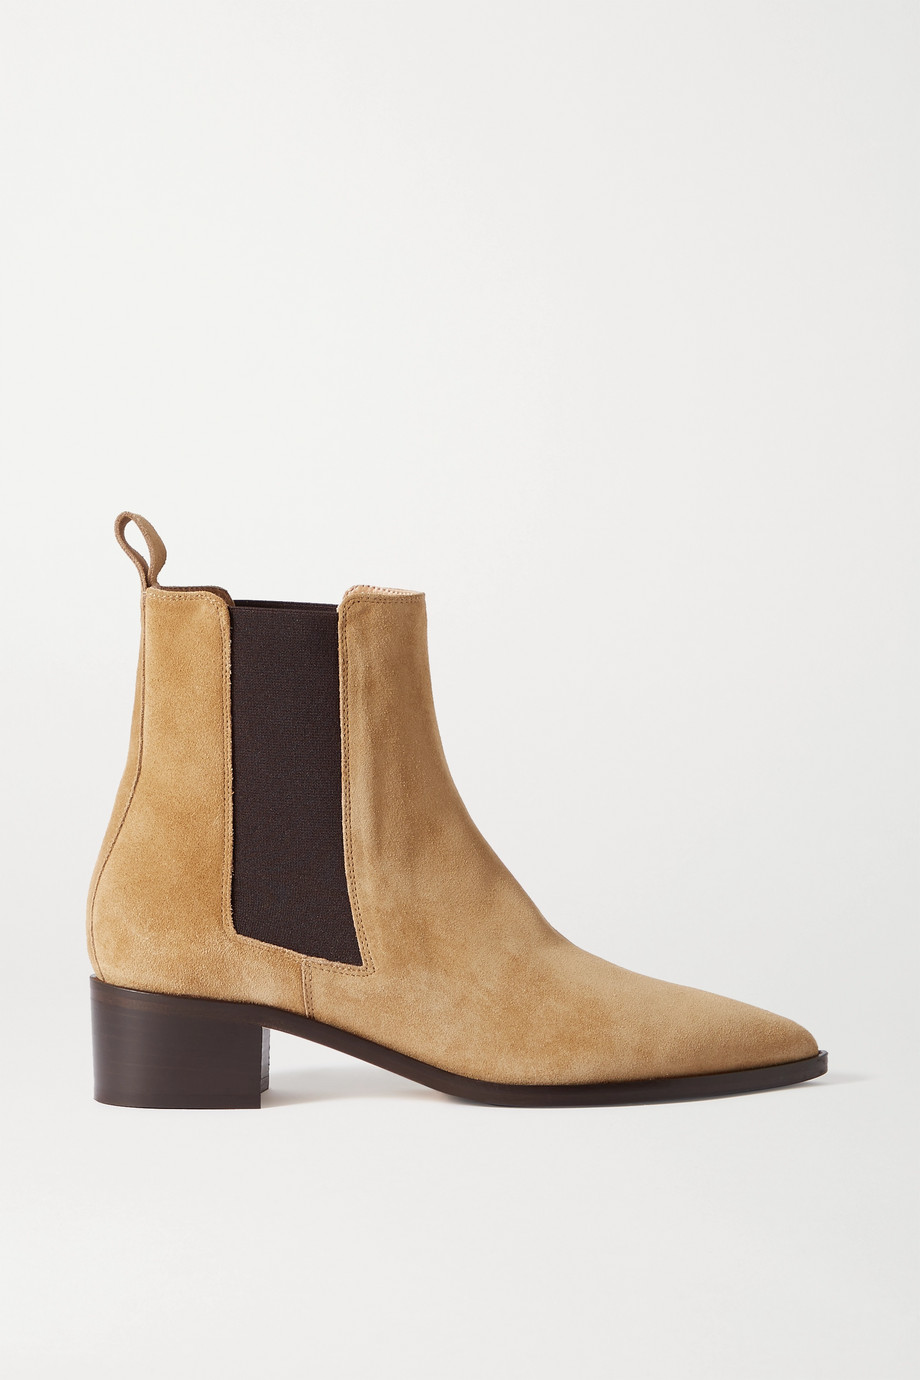 aeyde Lou suede Chelsea boots